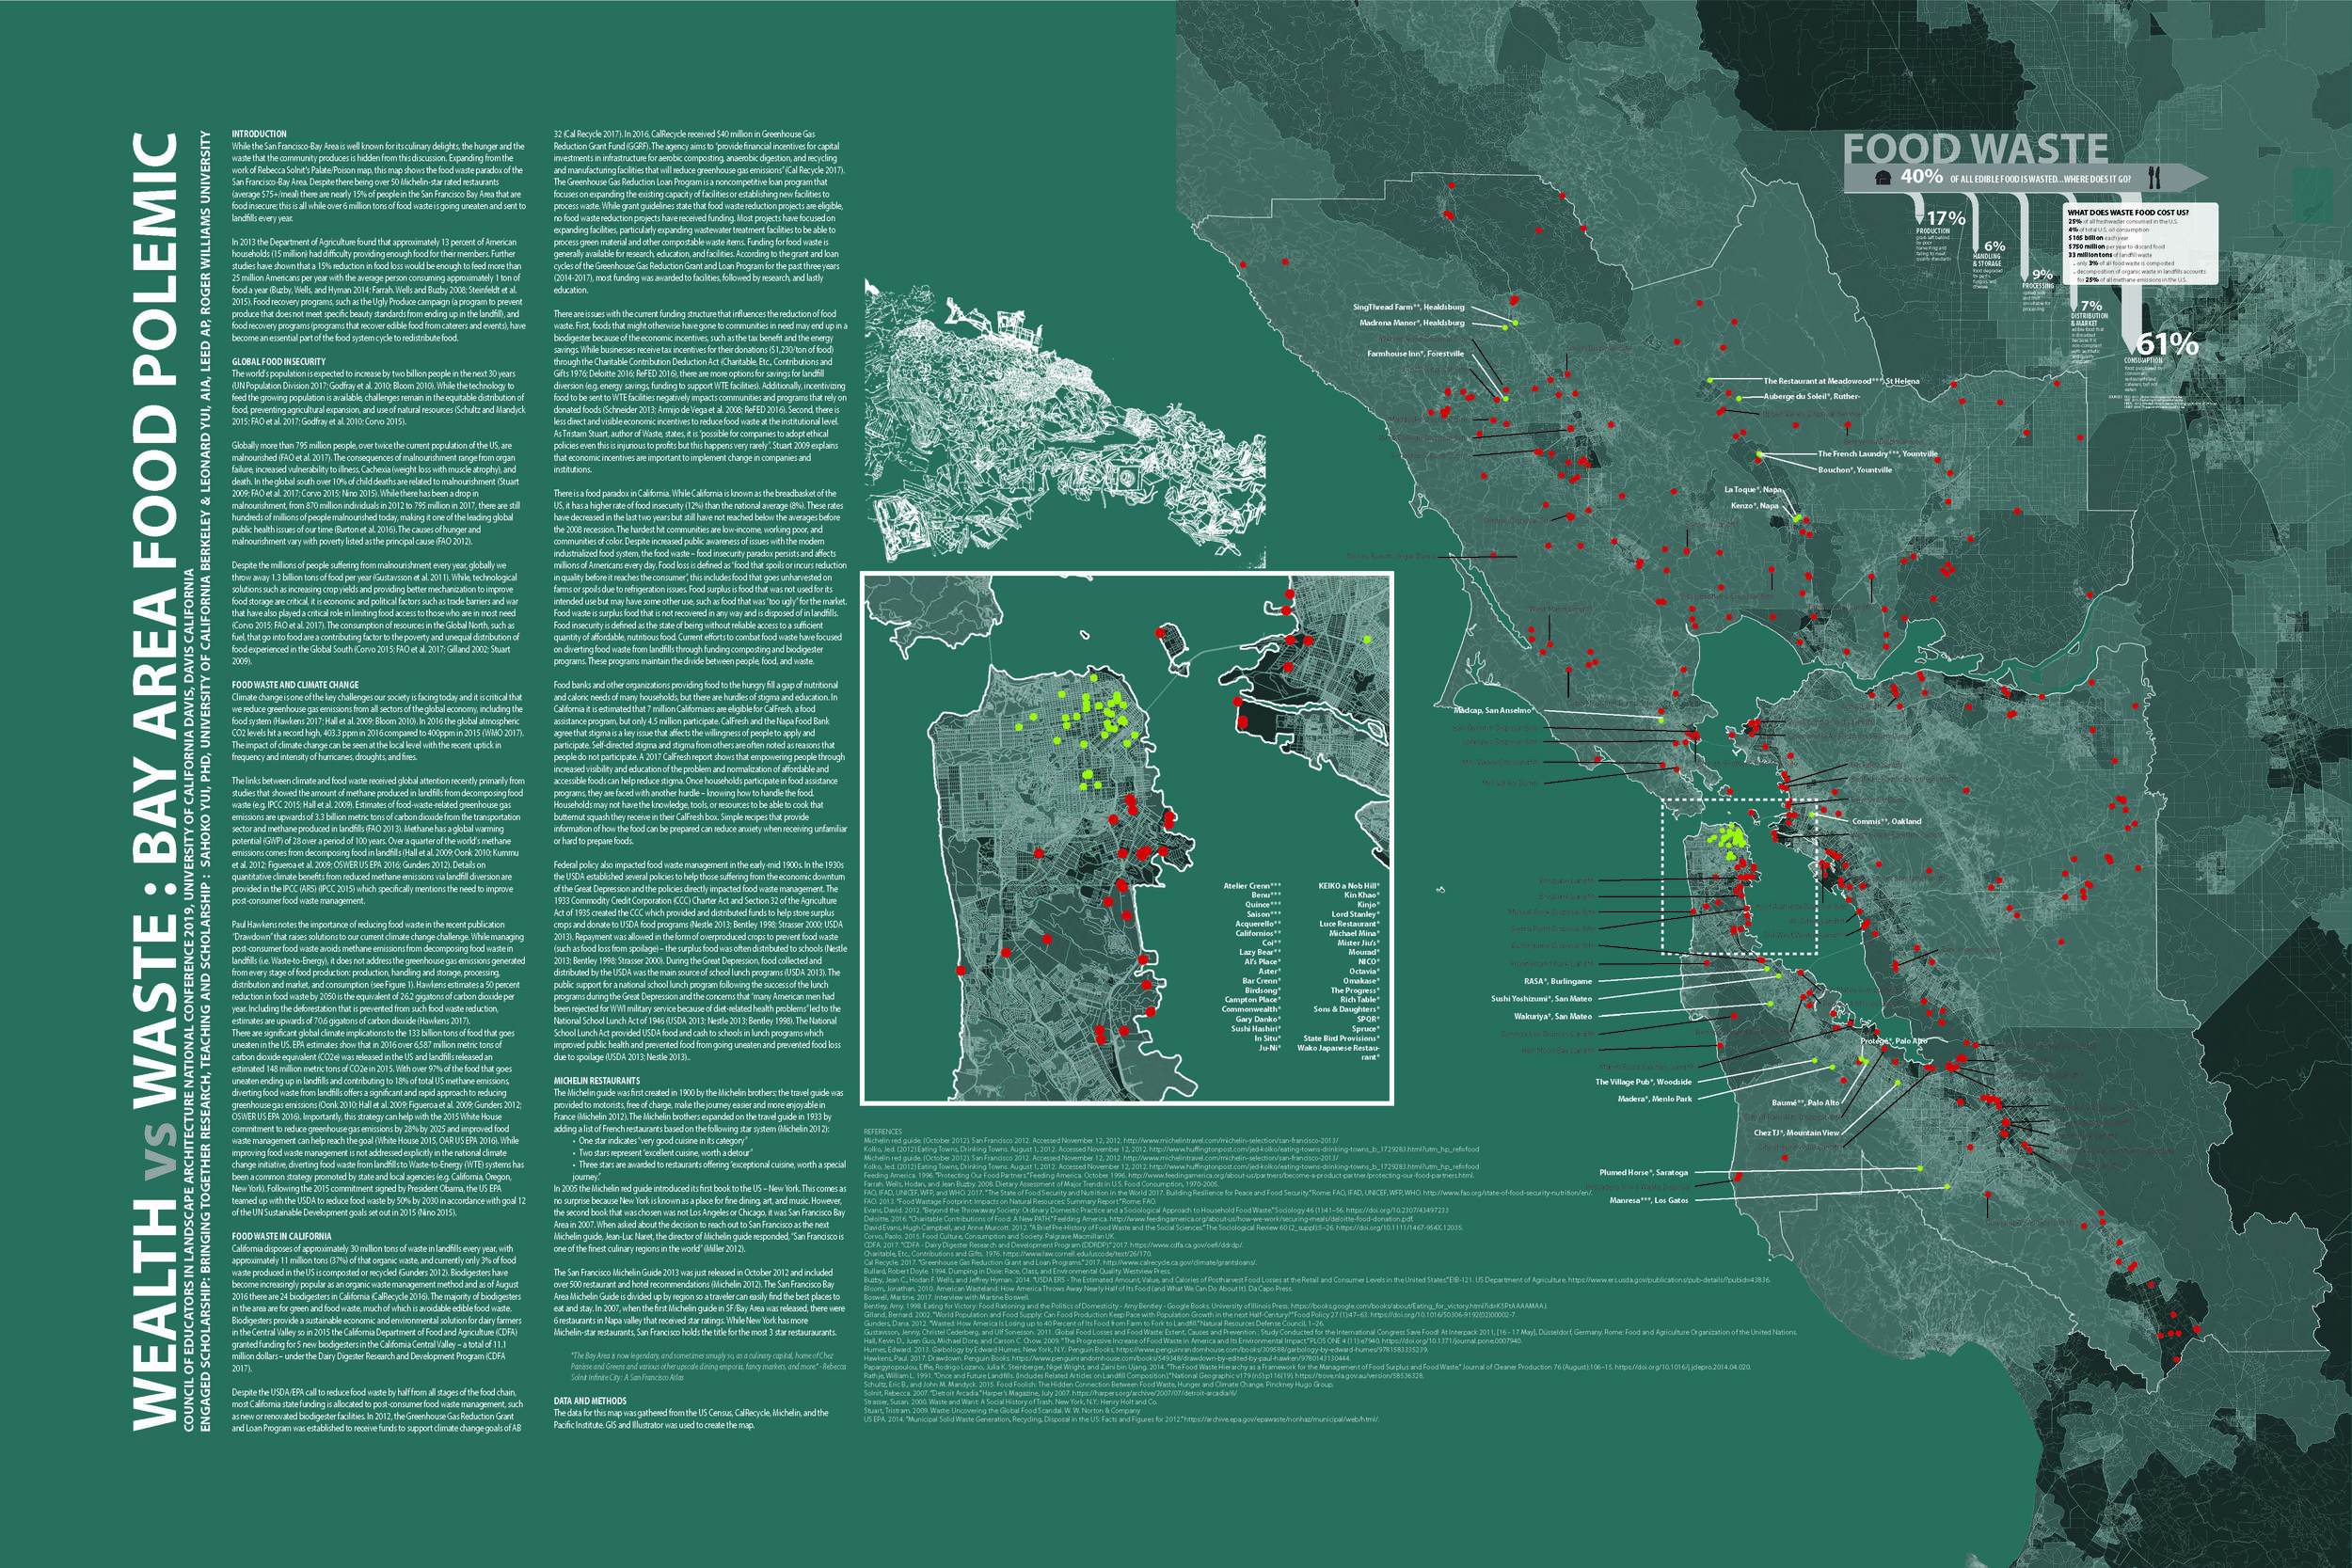 This map shows the location of waste facilities, location of Michelin star restaurants, and socially vulnerable communities. Poster presented at the Council of Educators in Landscape Architecture conference in Sacramento (2019). This was a collaborative project with Leonard Yui, Assistant Professor at Roger Williams University and presented at the Council of Educators in Landscape Architecture Conference in Sacramento on March 19, 2019. I took the lead on this project and gathered the GIS data and created the original map.